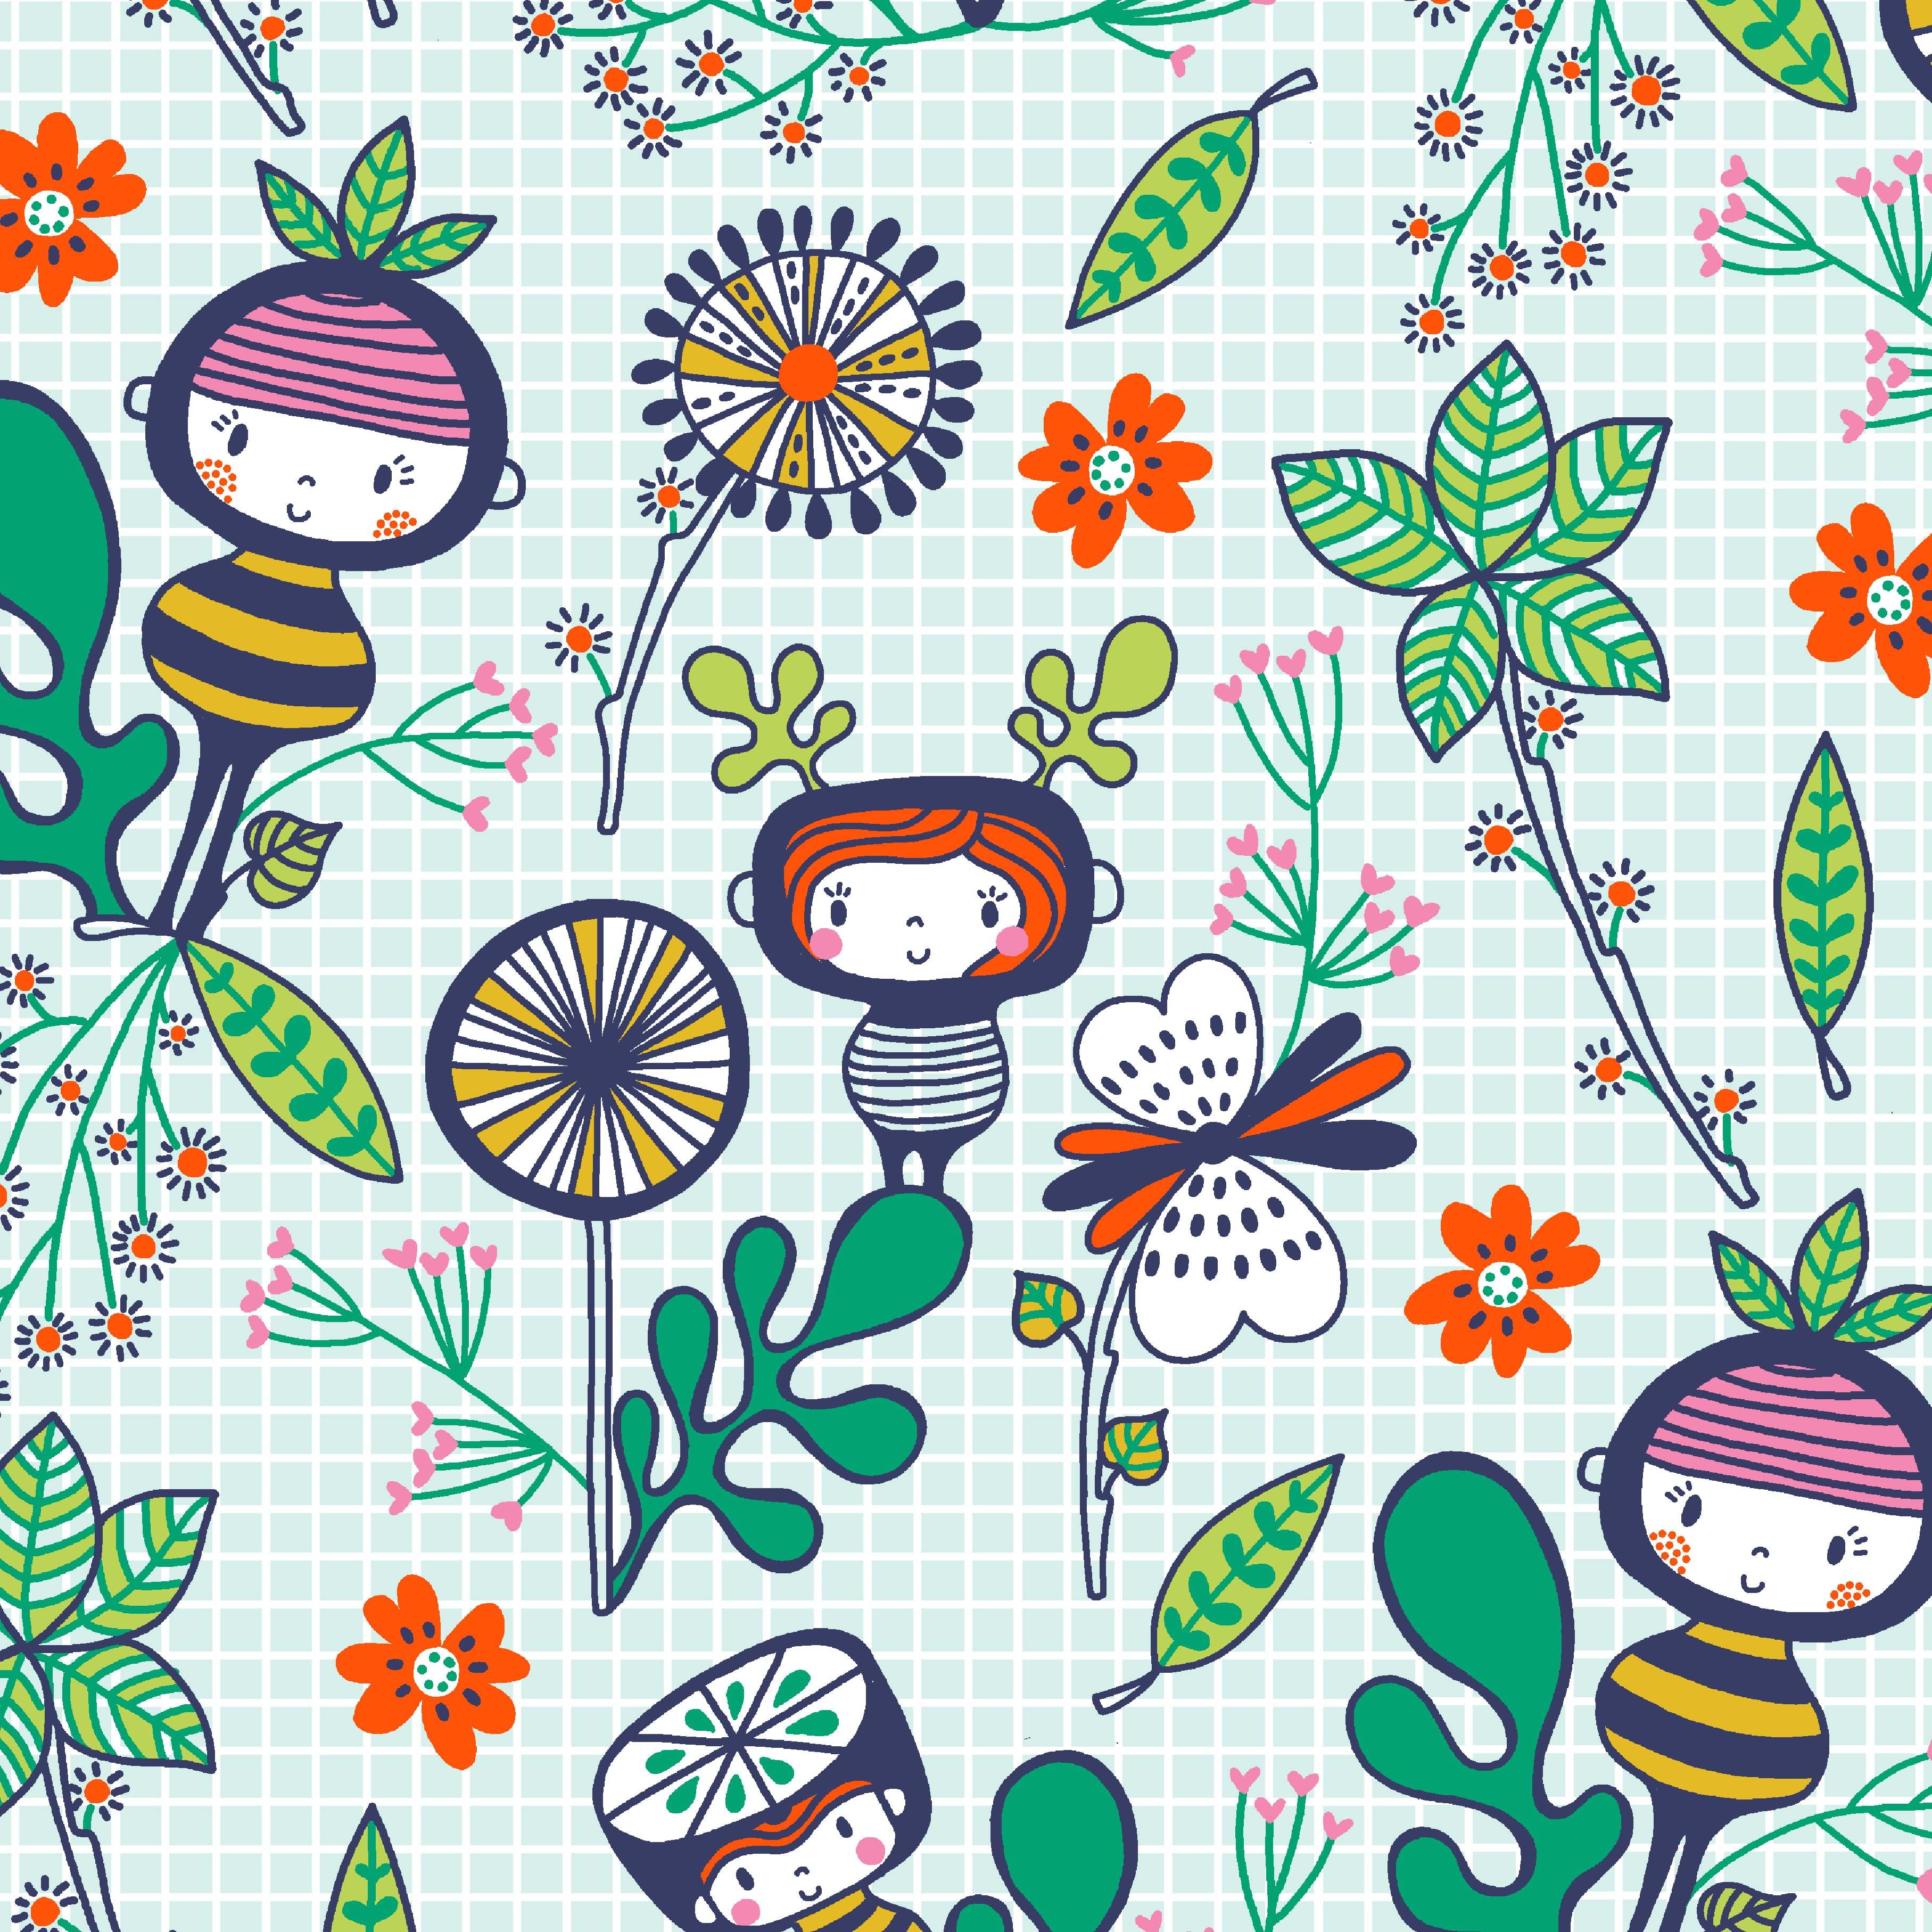 whimsical, flowers, leaves, illustrative textile design for fabric and surface design, Textile Designs, Surface Designs, Illustration, textildesign, stoffdesign